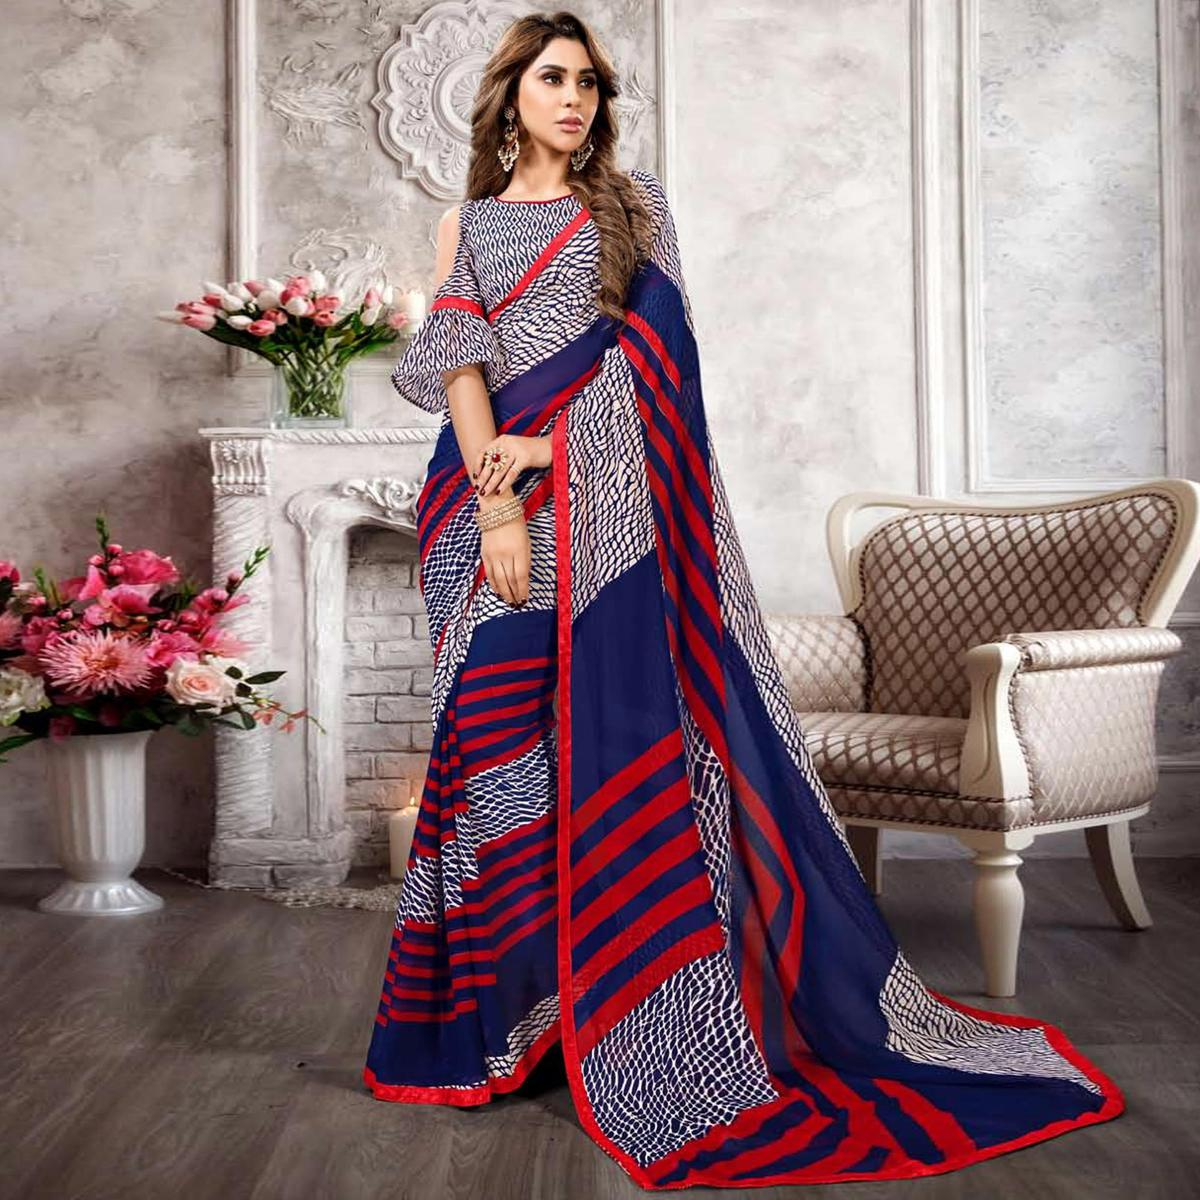 Flattering White-Blue Colored Casual Printed Heavy Georgette Saree With Lace Border